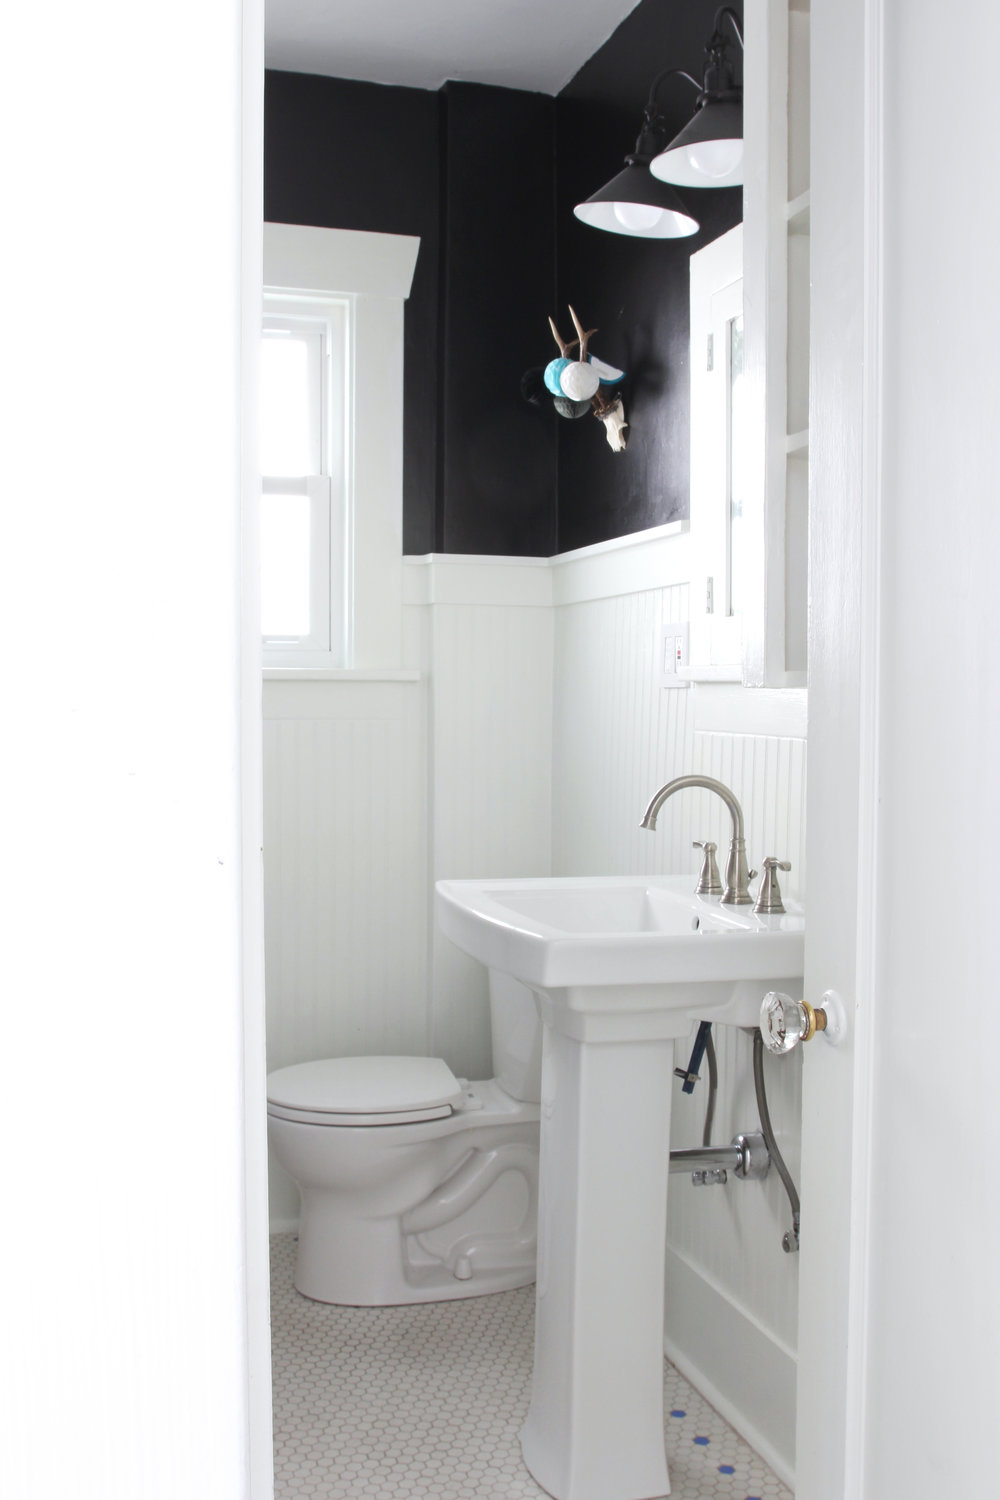 The Grit and Polish - Dexter Bathroom Refresh Under $1000 3.jpg